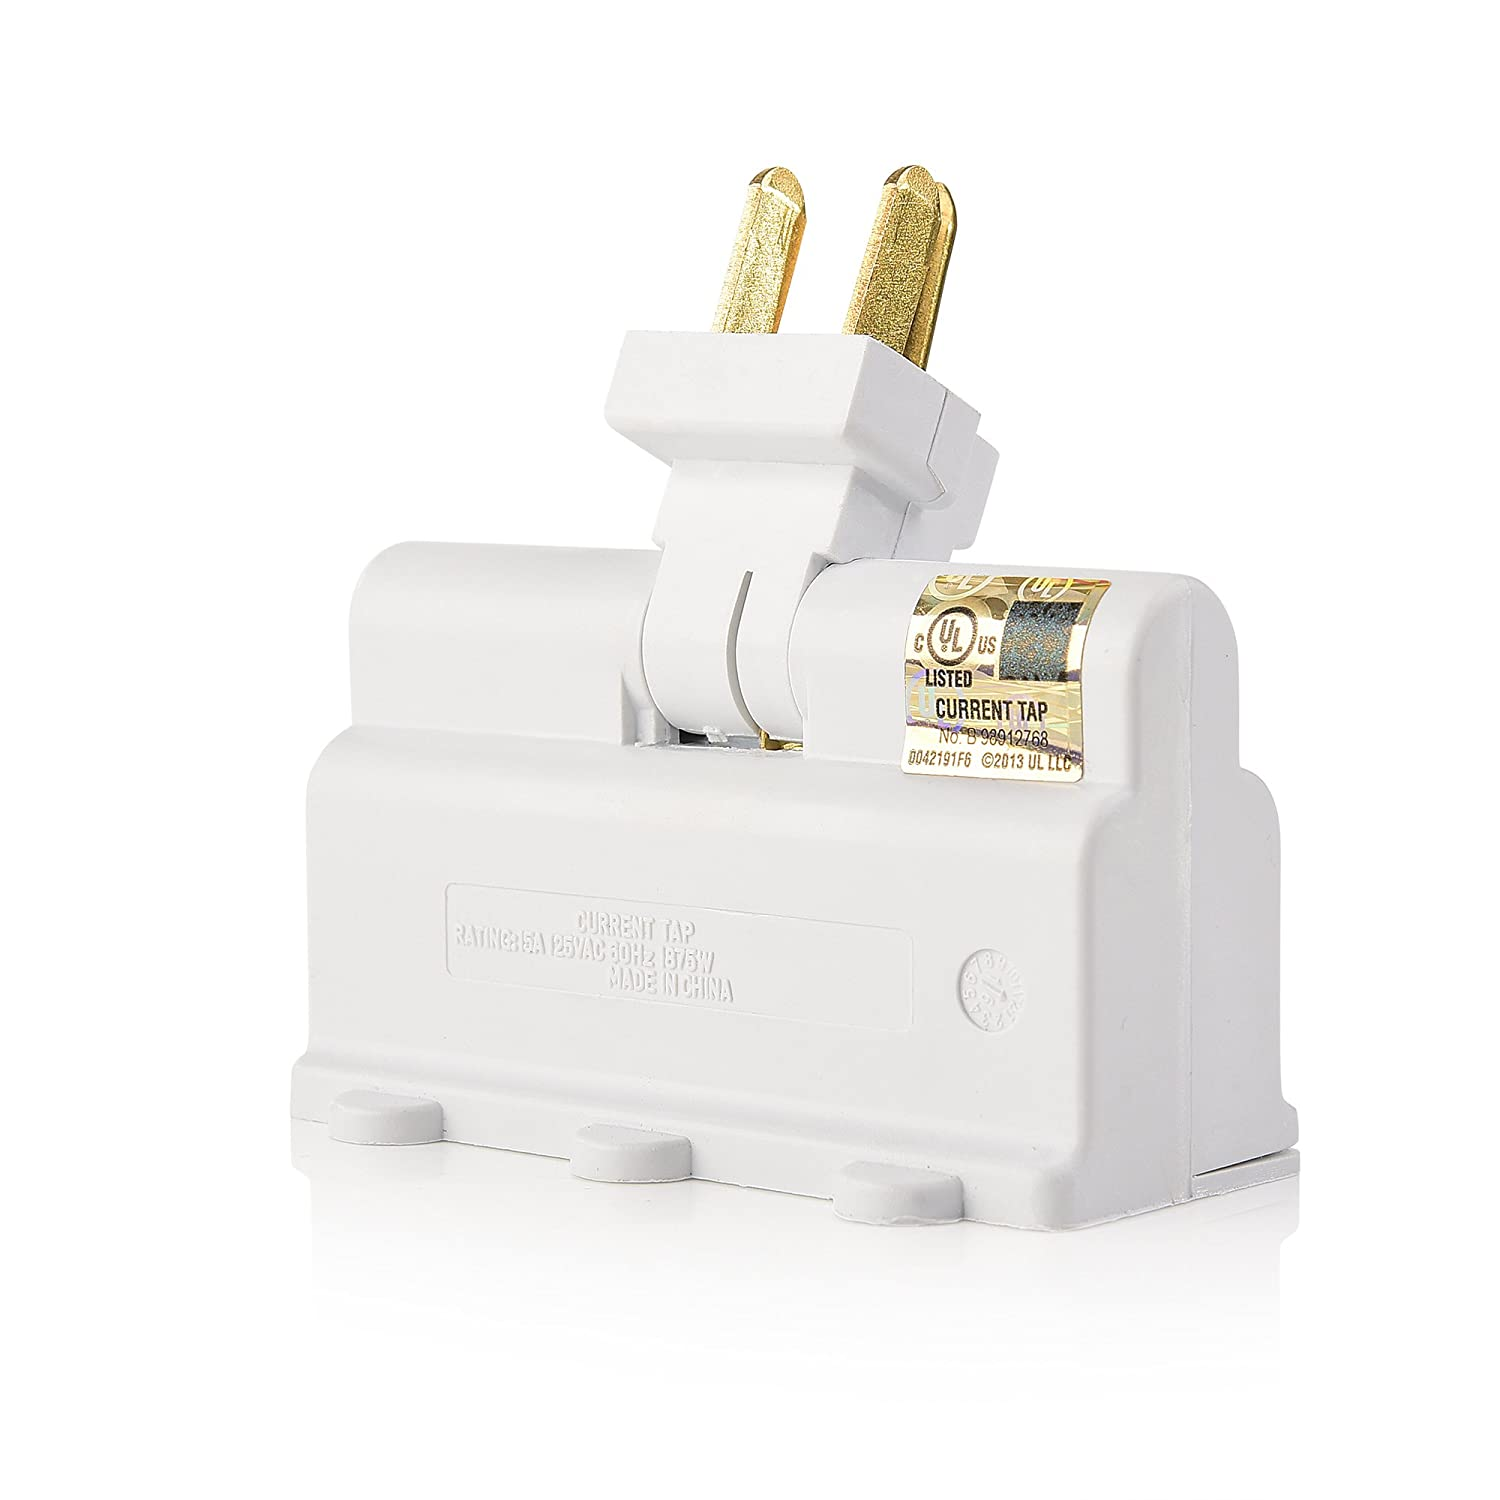 Cable Matters 3-Outlet Grounded 180 Degree Swivel Wall Tap 400013x2 2-Pack